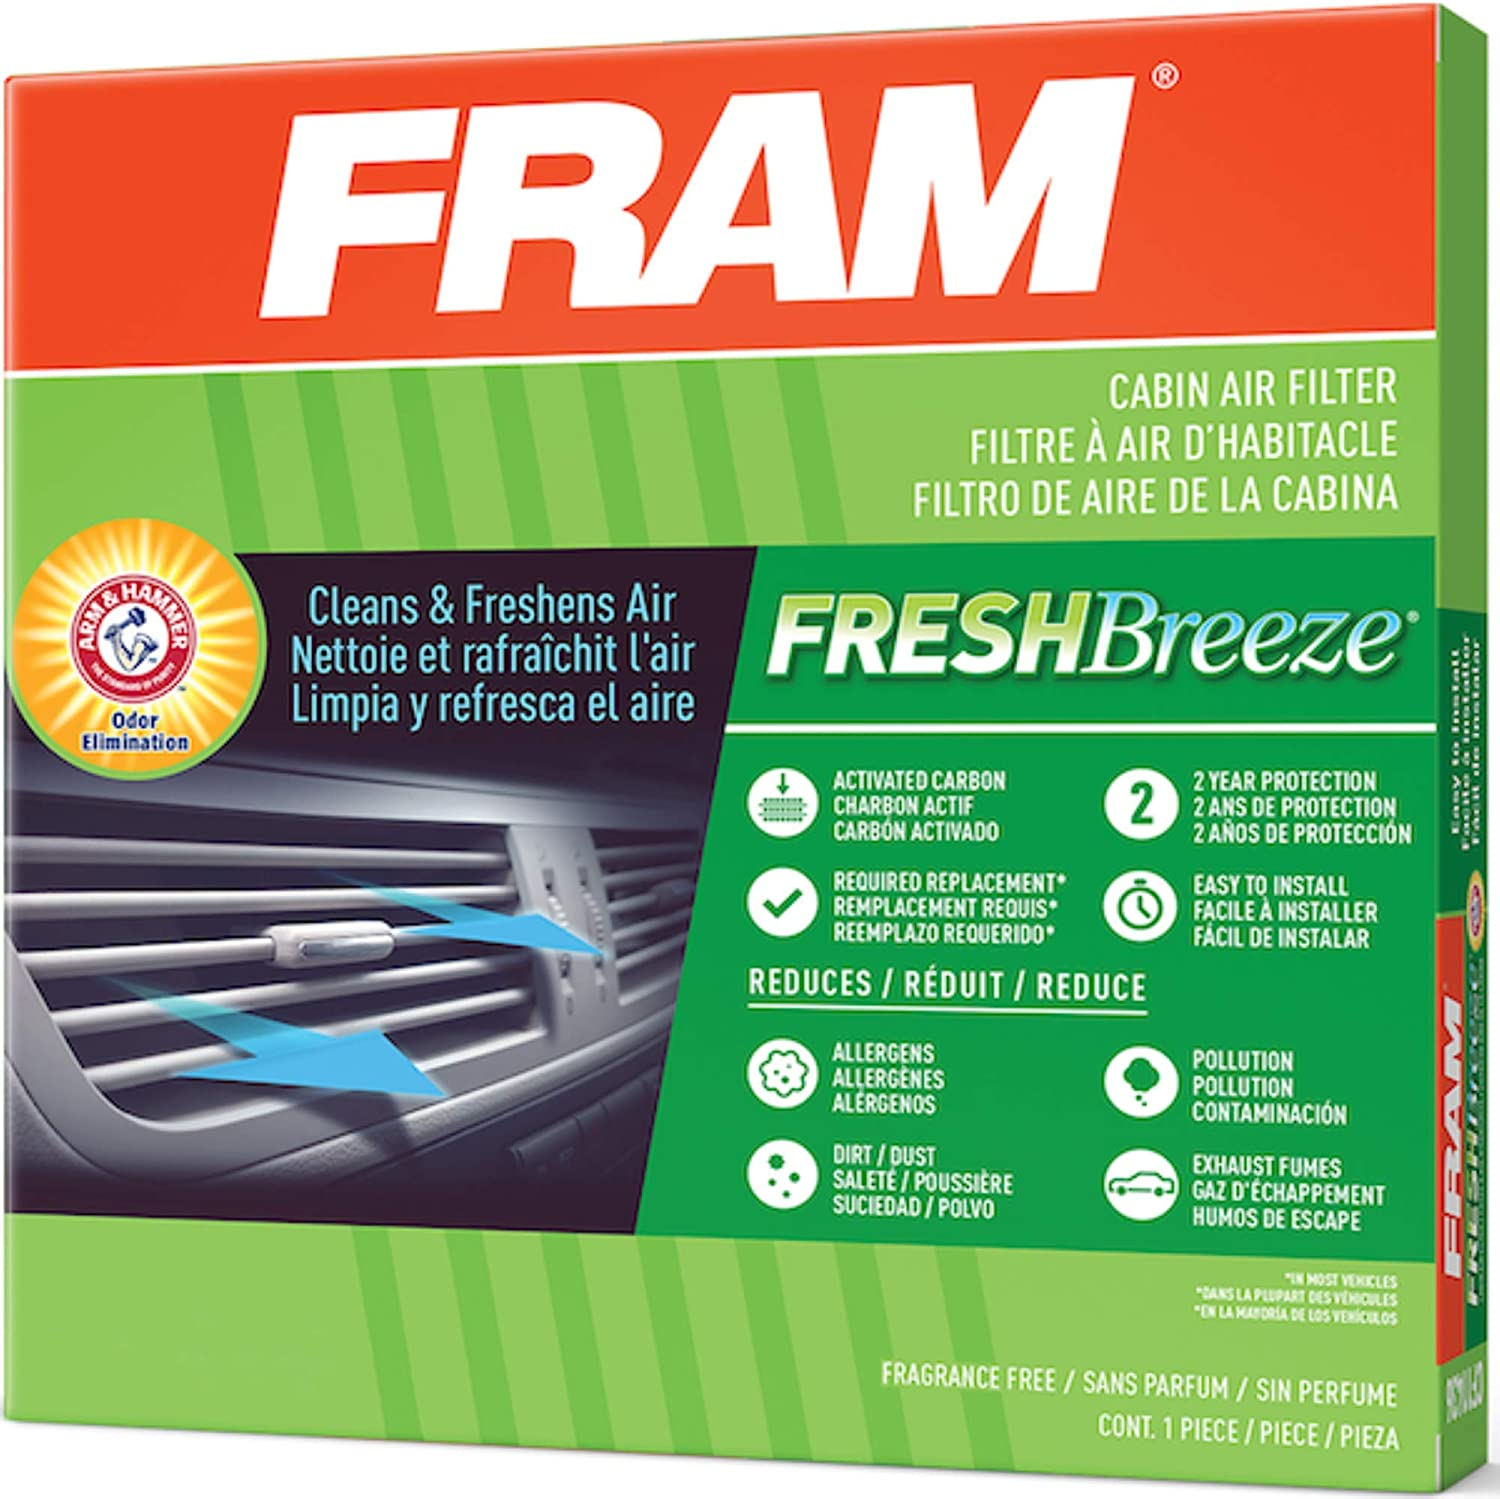 FRAM Fresh Breeze Cabin Air Filter with Arm & Hammer Baking Soda, CF10377 for Saab/Subaru Vehicles